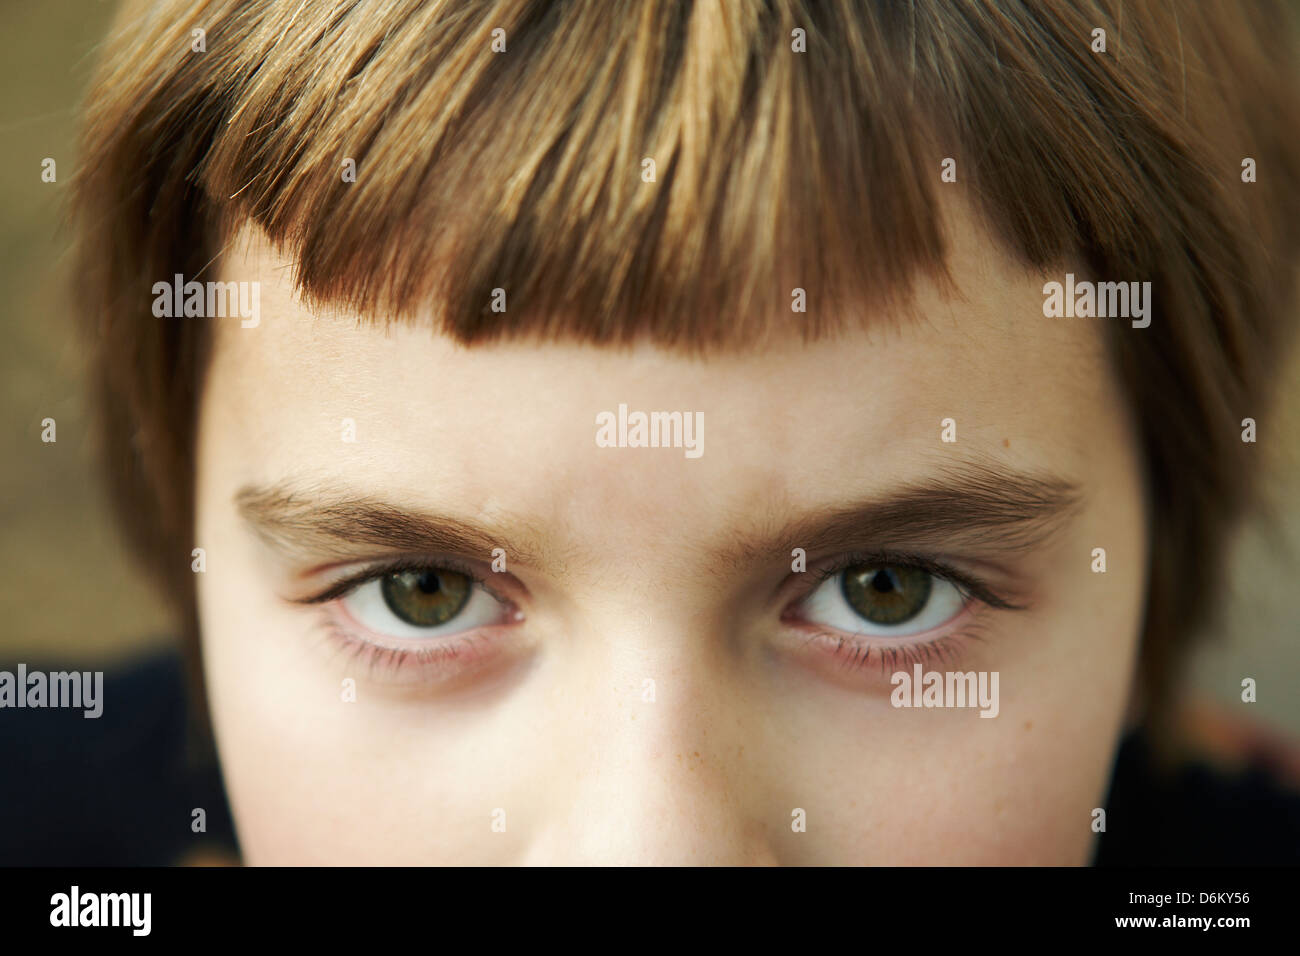 7 year old girl with bangs - Stock Image